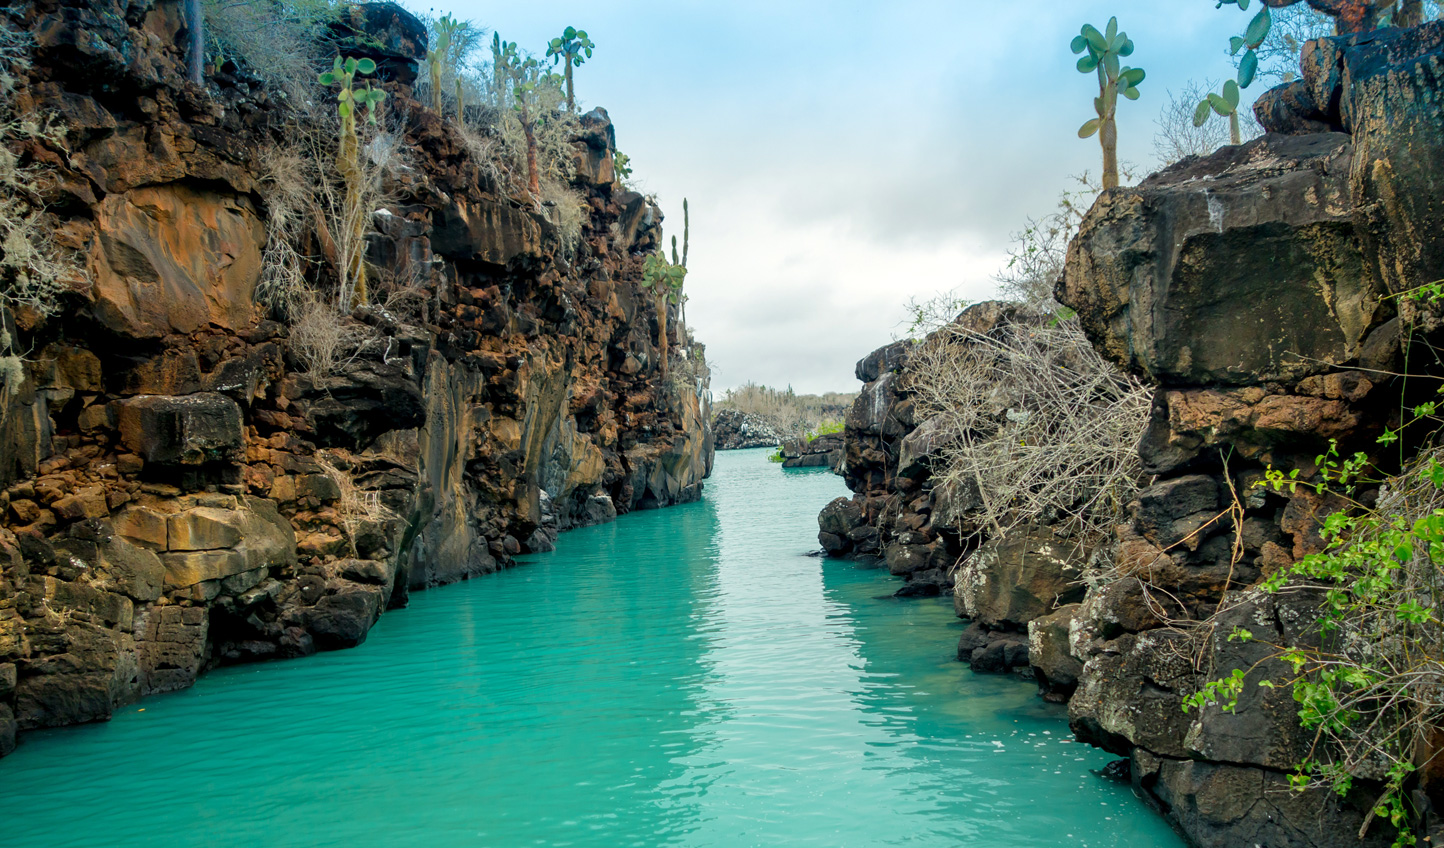 Visit Las Grietas, a geological canyon formation on the Galápagos Islands